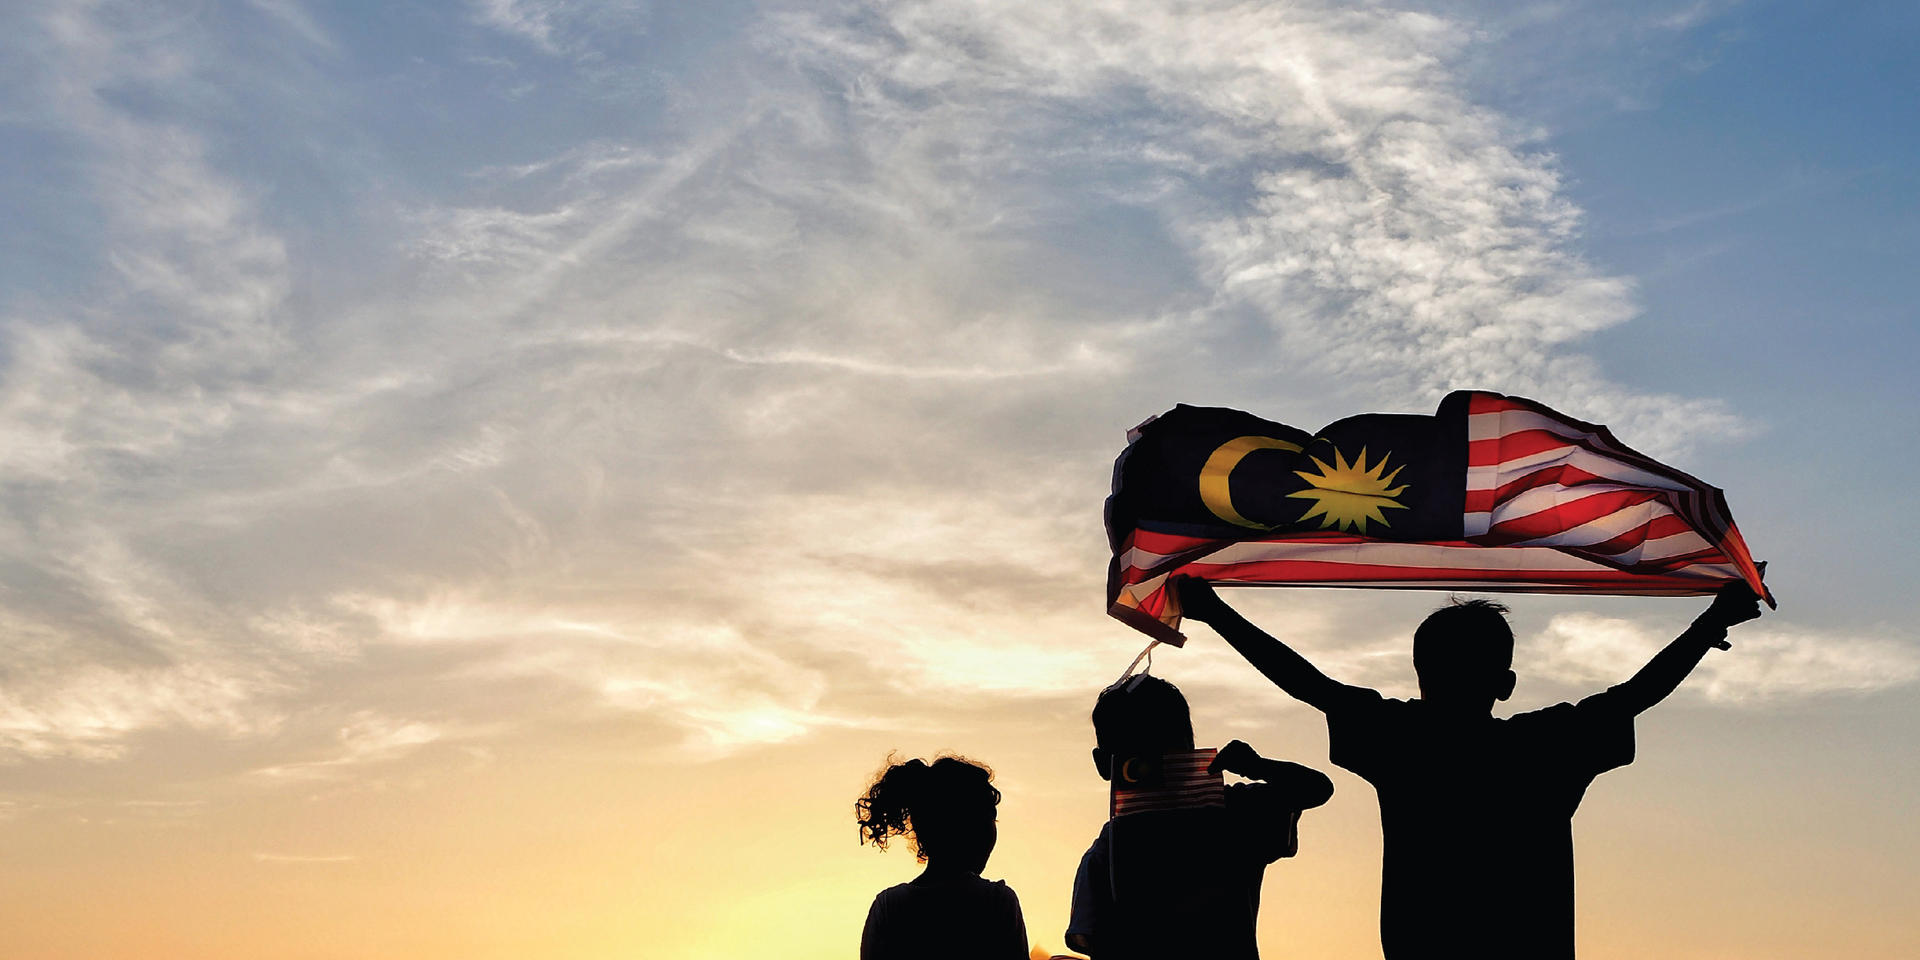 Together with our frontliners, we will win this battle and emerge victorious! Malaysia Boleh!